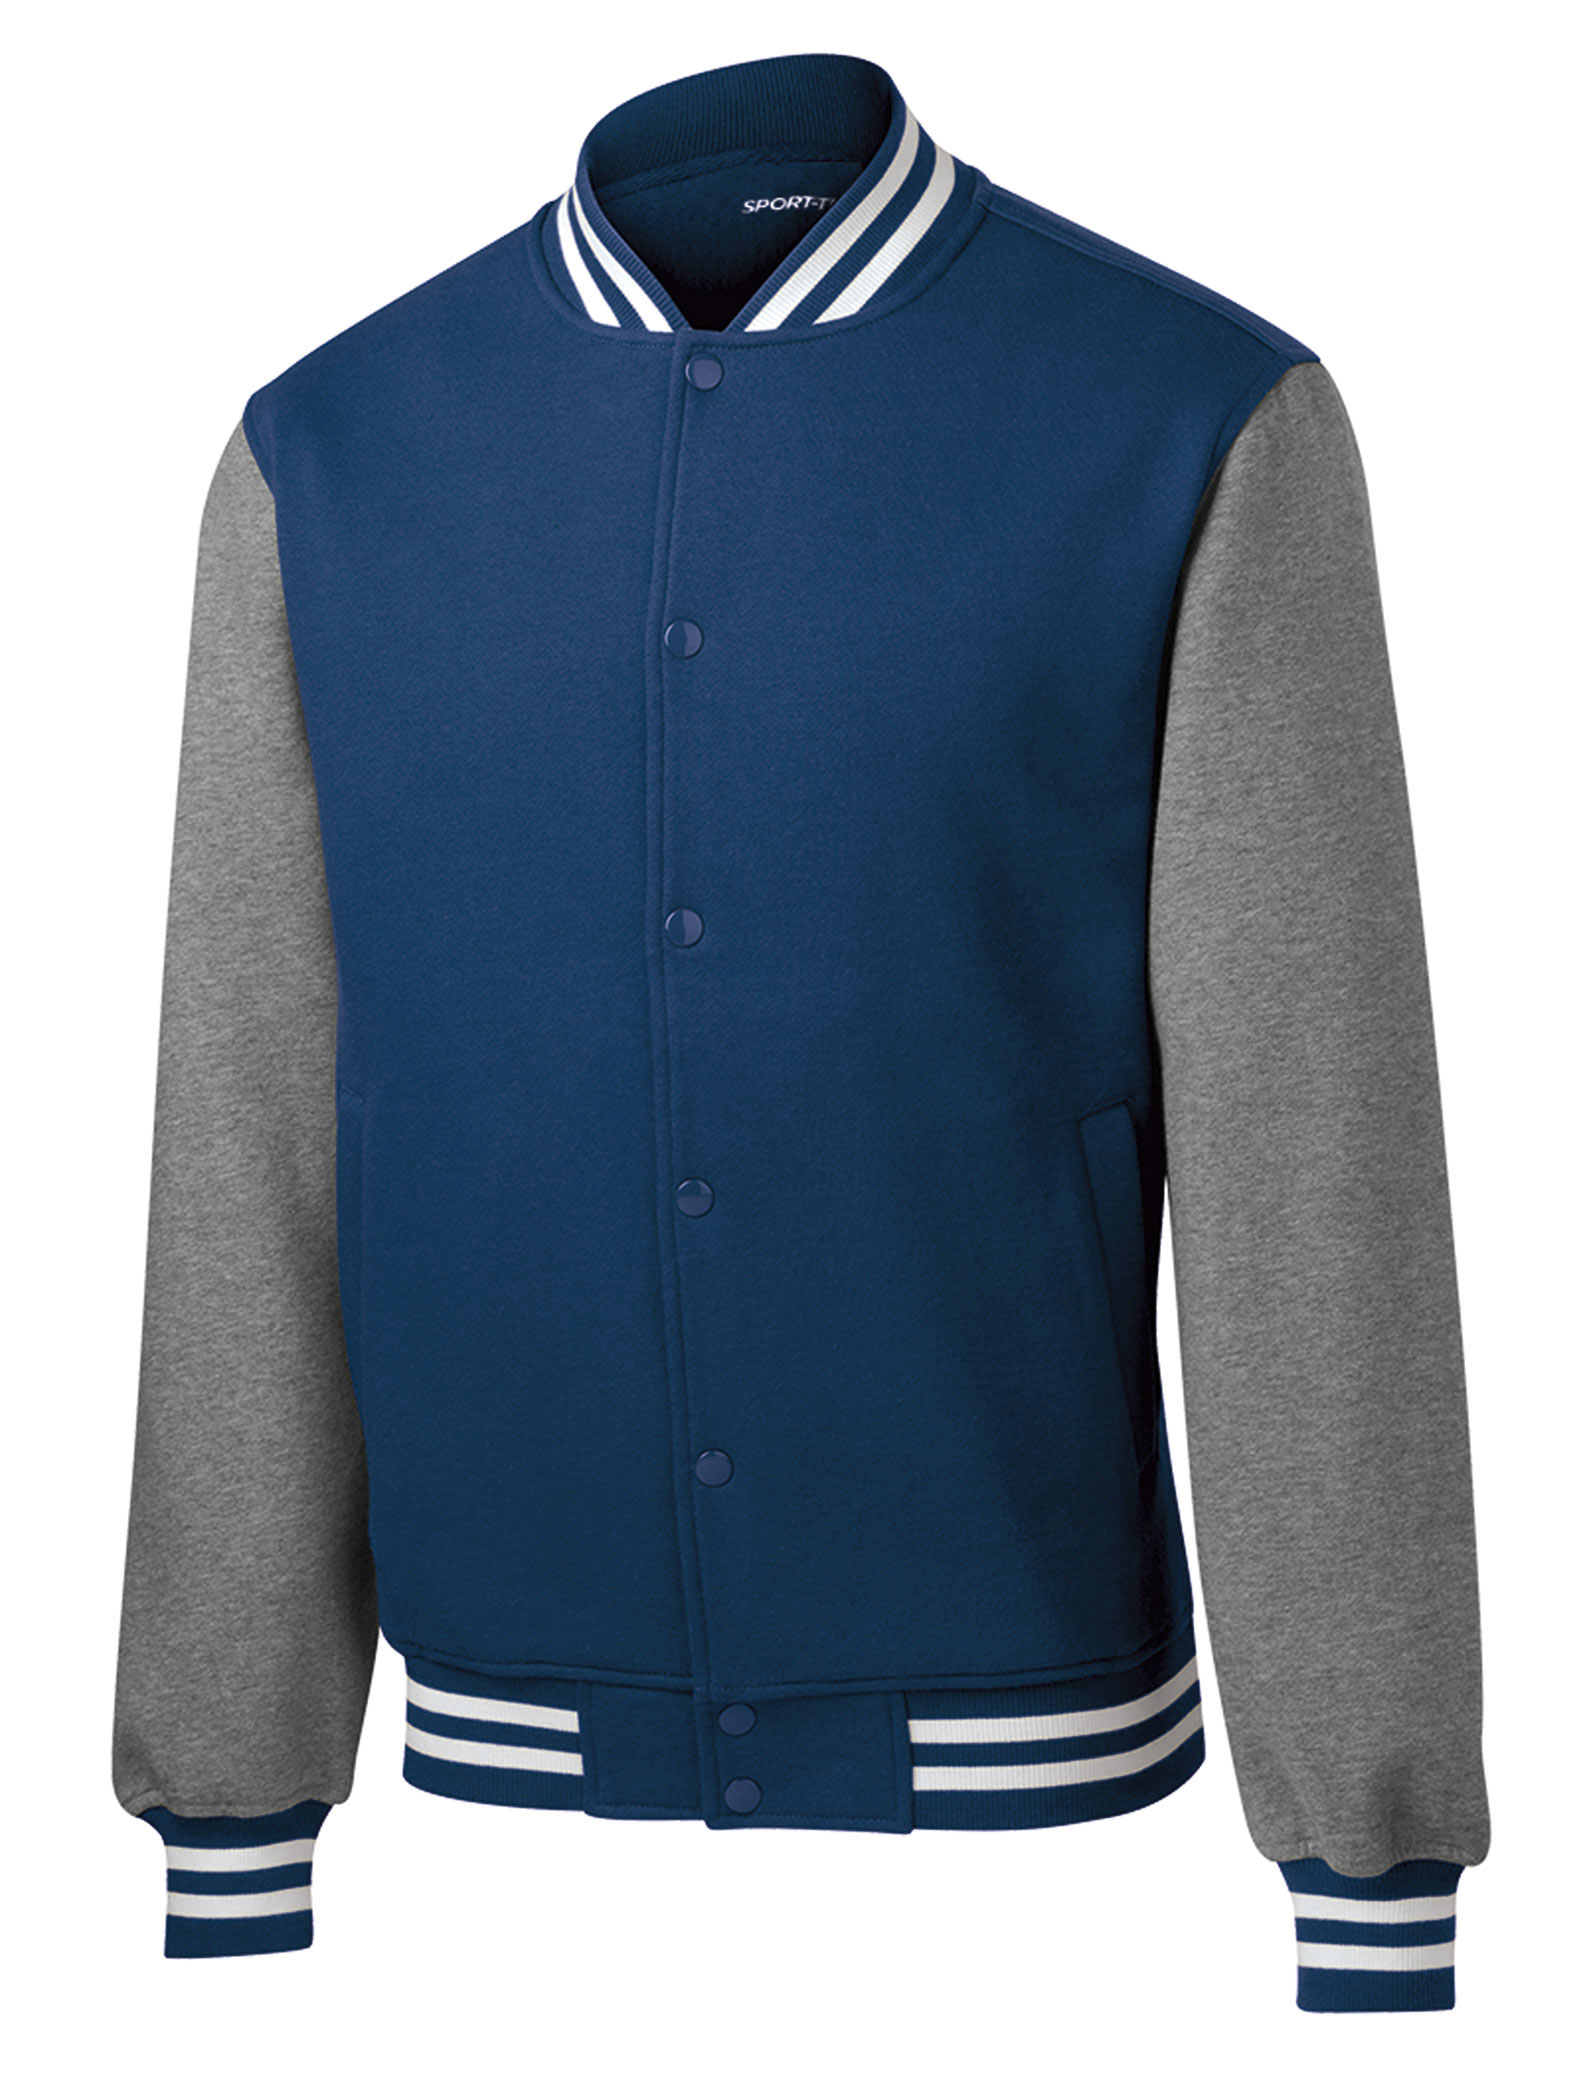 Varsity Jacket Design Maker | Custom Made Varsity Jackets And Custom Made Varsity Outerwear